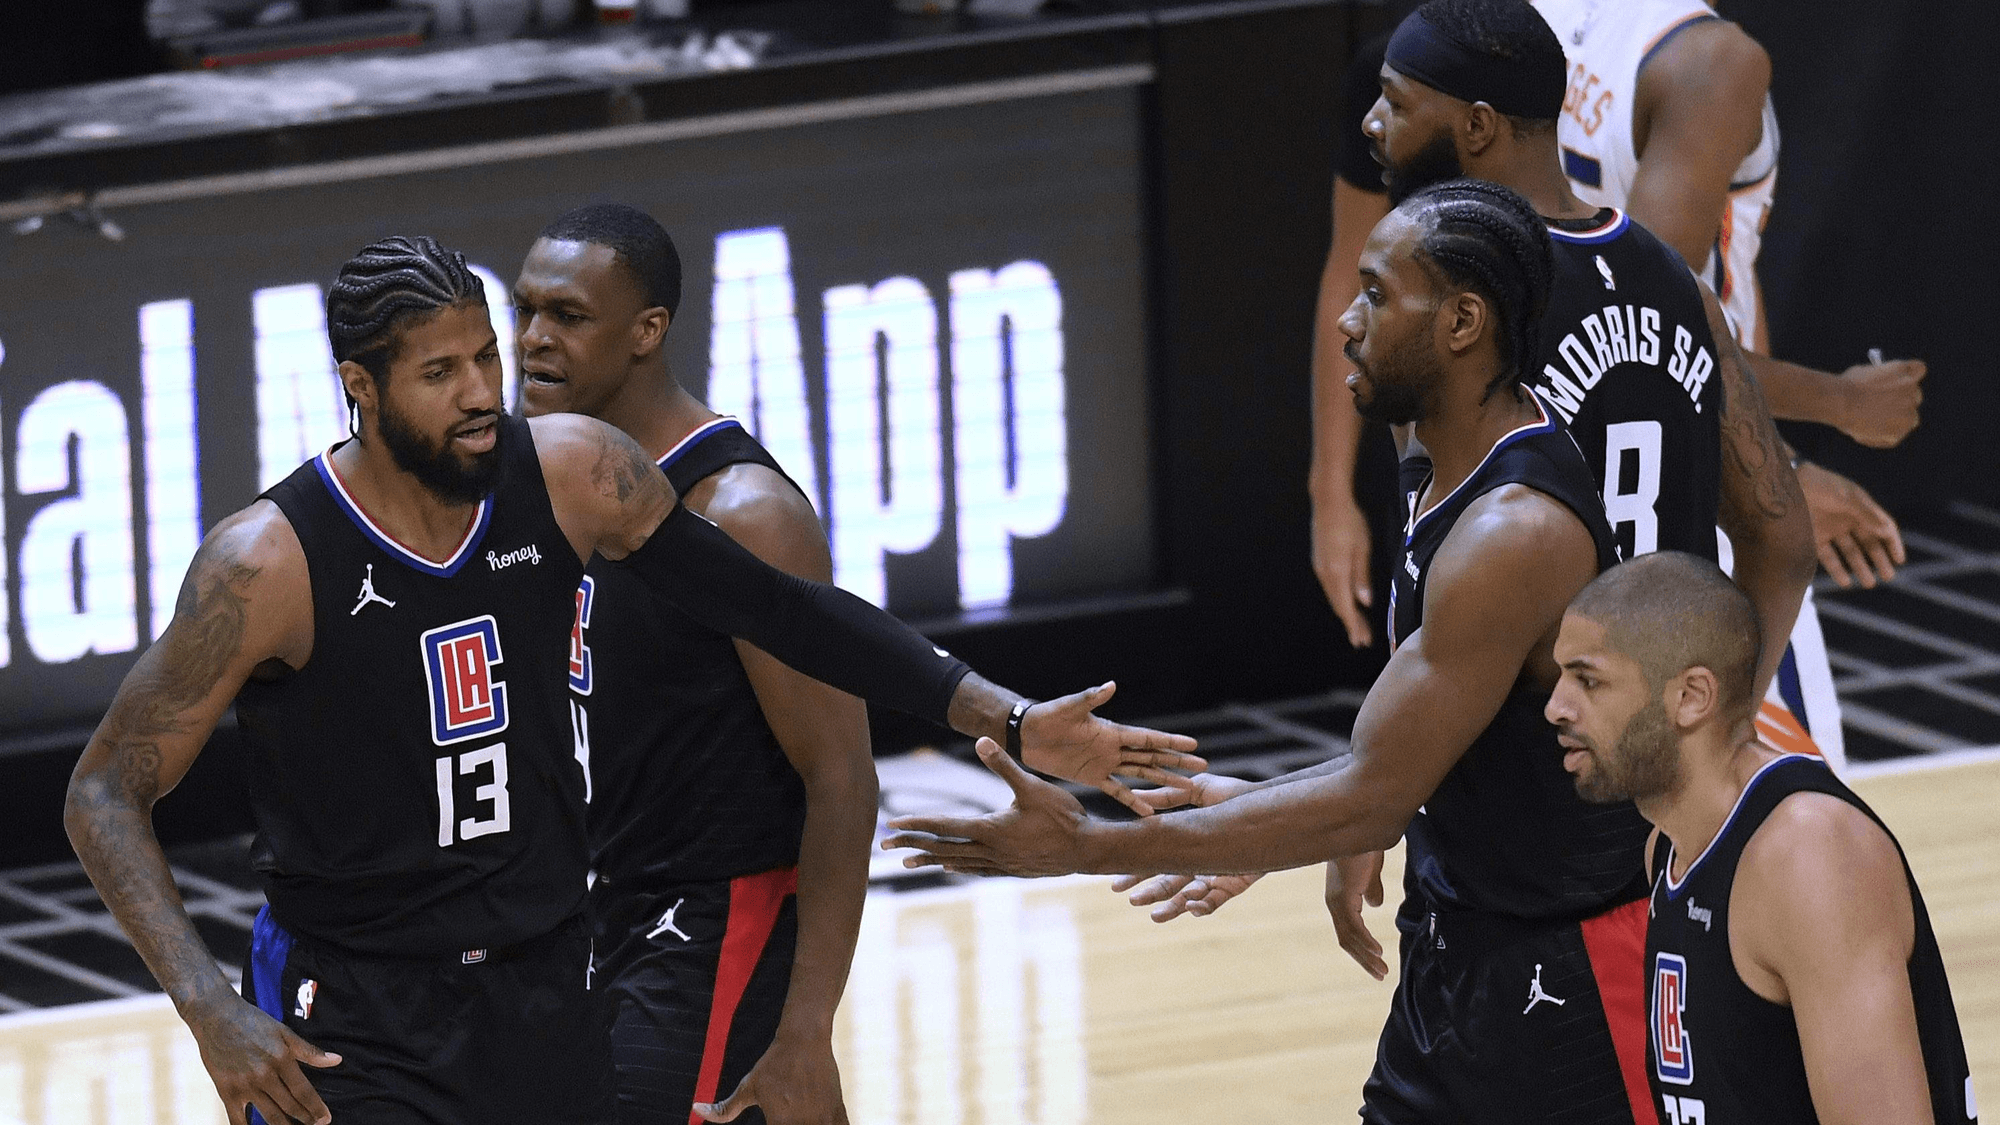 Los Angeles Clippers vs Phoenix Suns Preview: Clippers' Perimeter Prowess Provides Prime Underdog Value in Phoenix